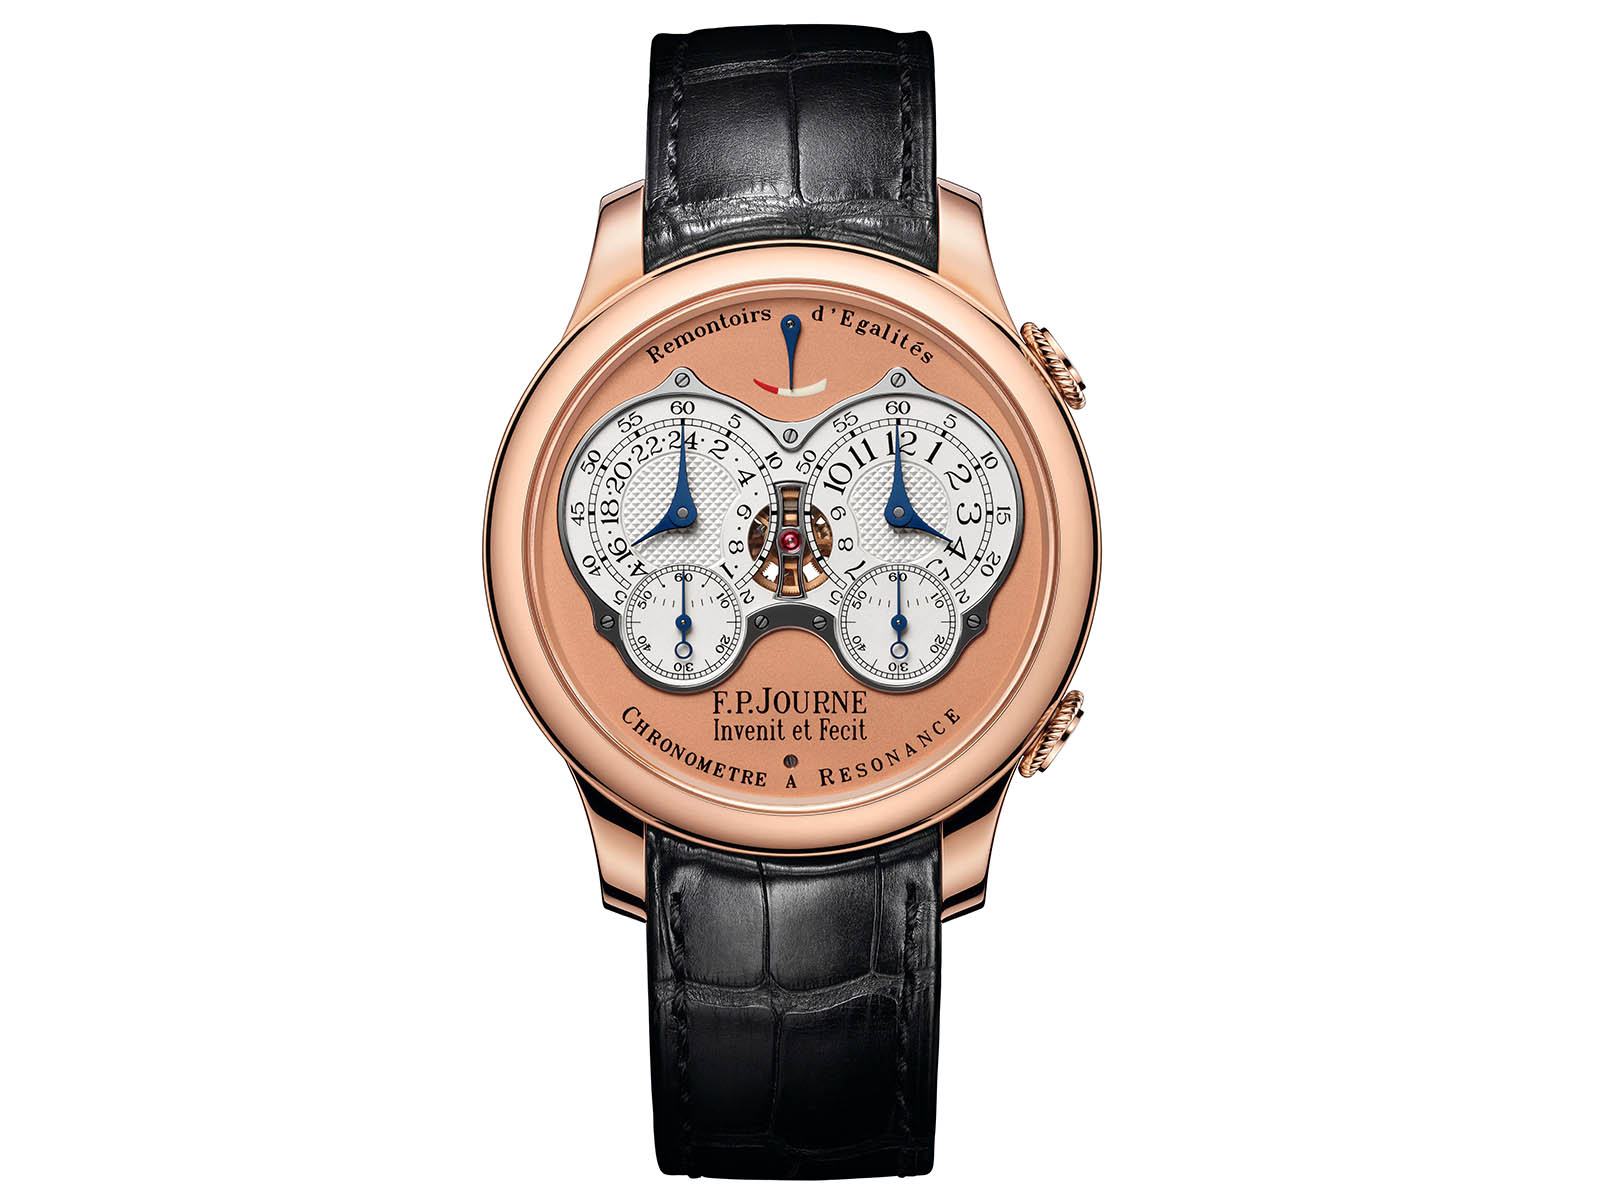 f-p-journe-chronometre-a-resonance-8.jpg